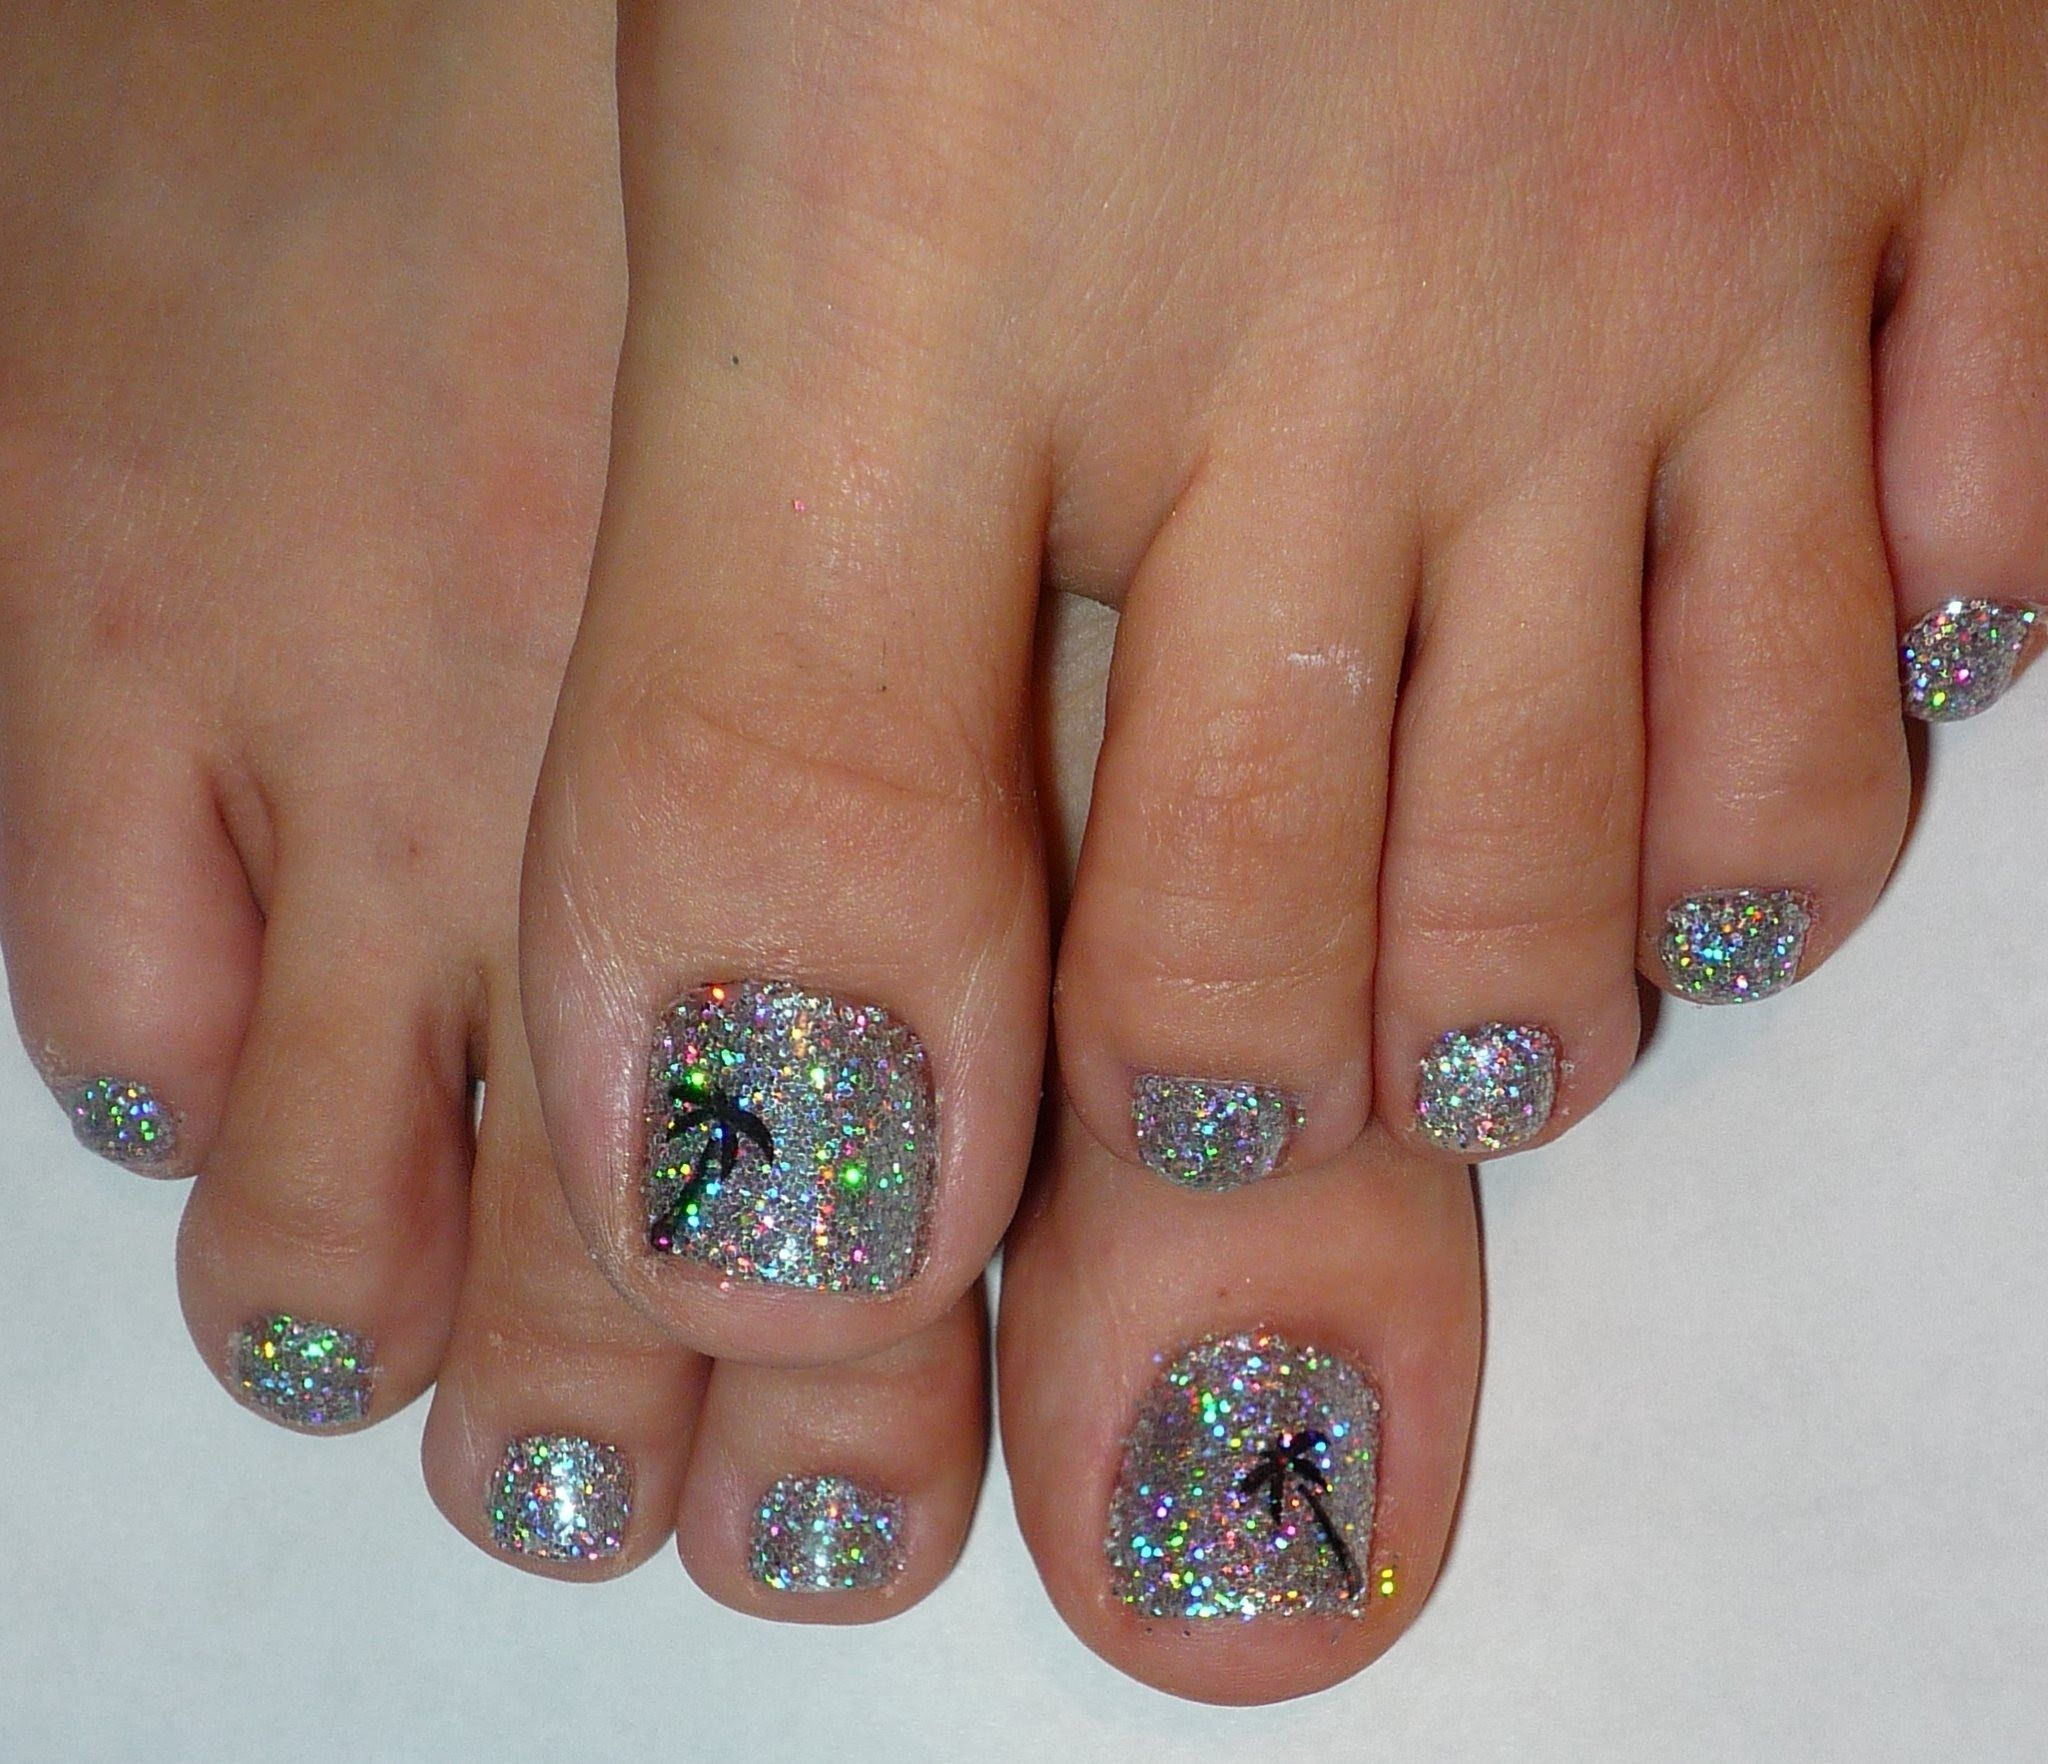 Rock Star Toe Nails #2 \